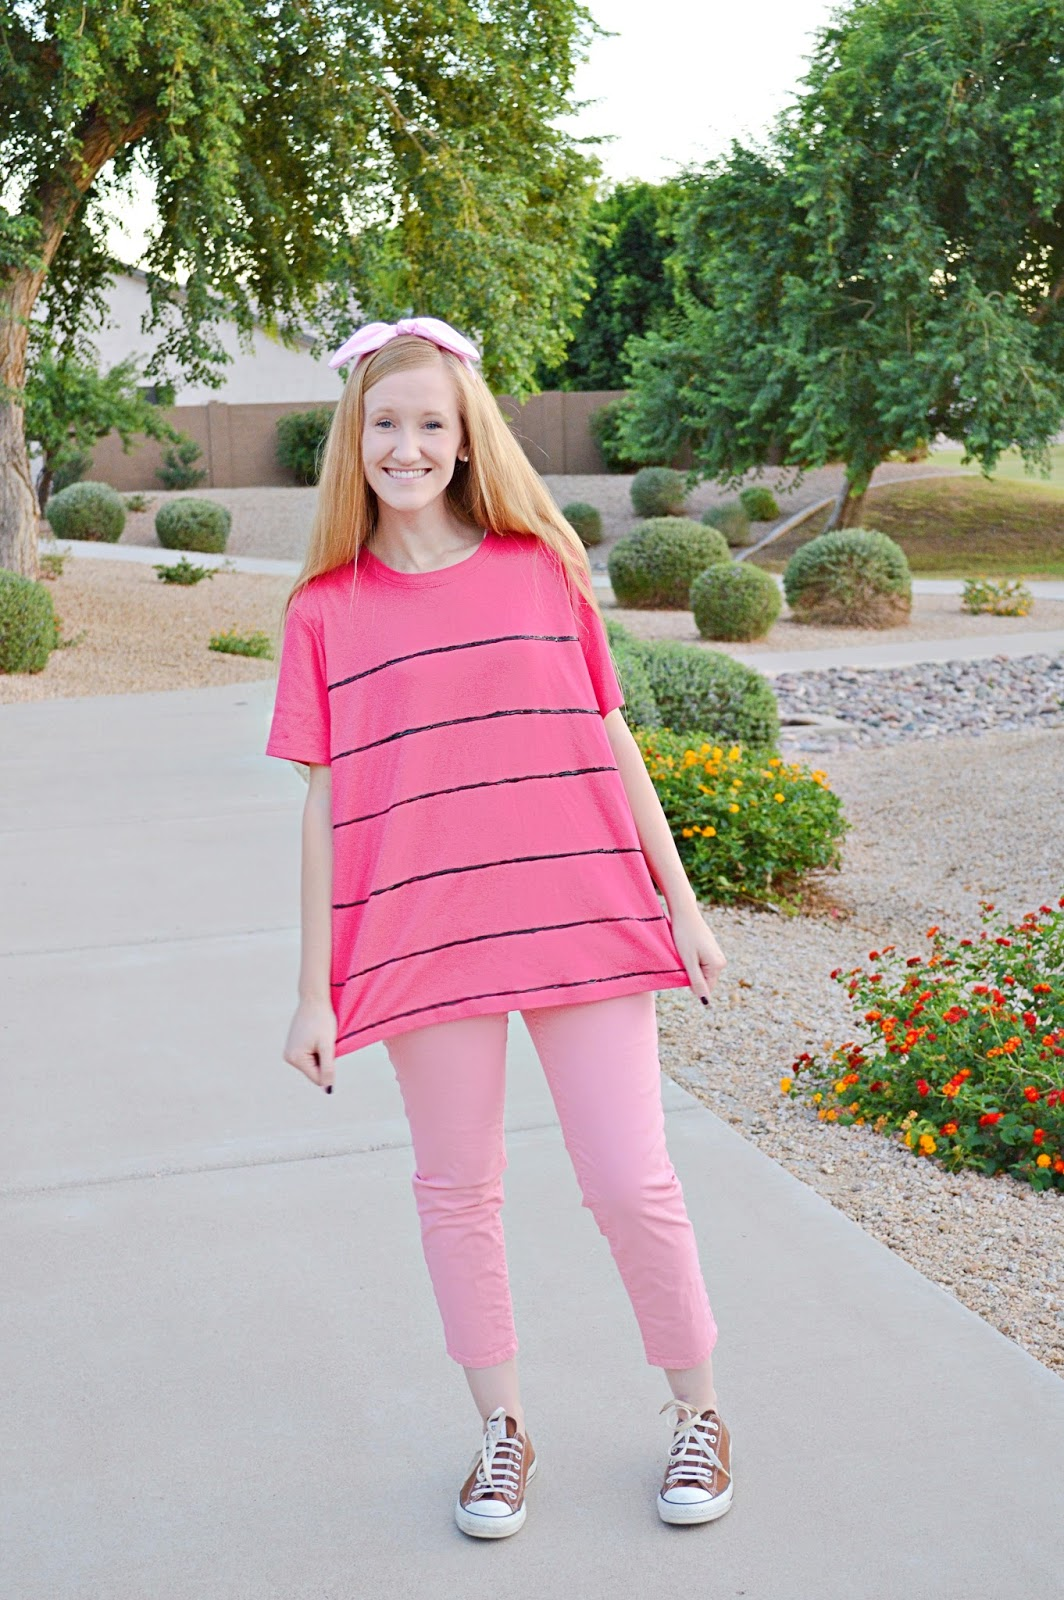 Last weekend we headed to Deseret Industries and were able to put together the perfect outfits for both of our characters -Christopher Robin and Piglet. & Halloween costumes with Deseret Industries - Alyssa Dawson Blog